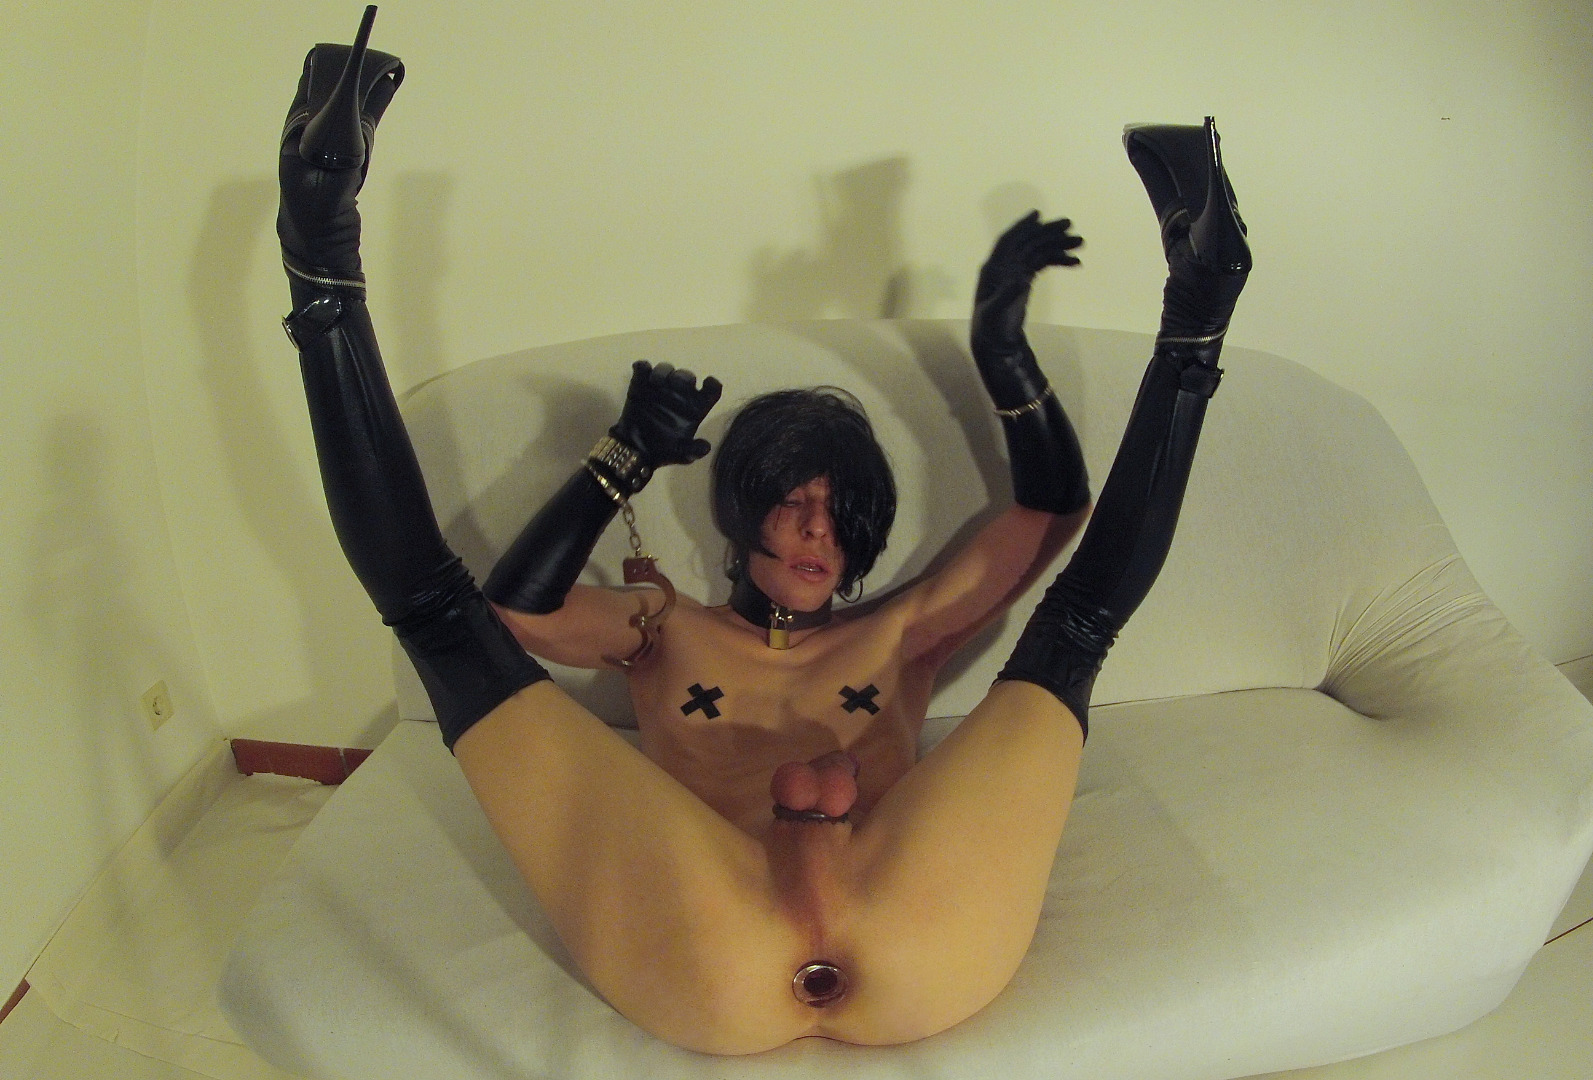 latina newcomer vanessa demonstrates her nice butt Buttplug, Cd, Crossdresser, Dickgirl, Femboi, Gurl, Plugged, Sexytranny, Shemale, Sissy, Tgirl, Tranny, Trans, Trans, Transsexual, Trap, Ts